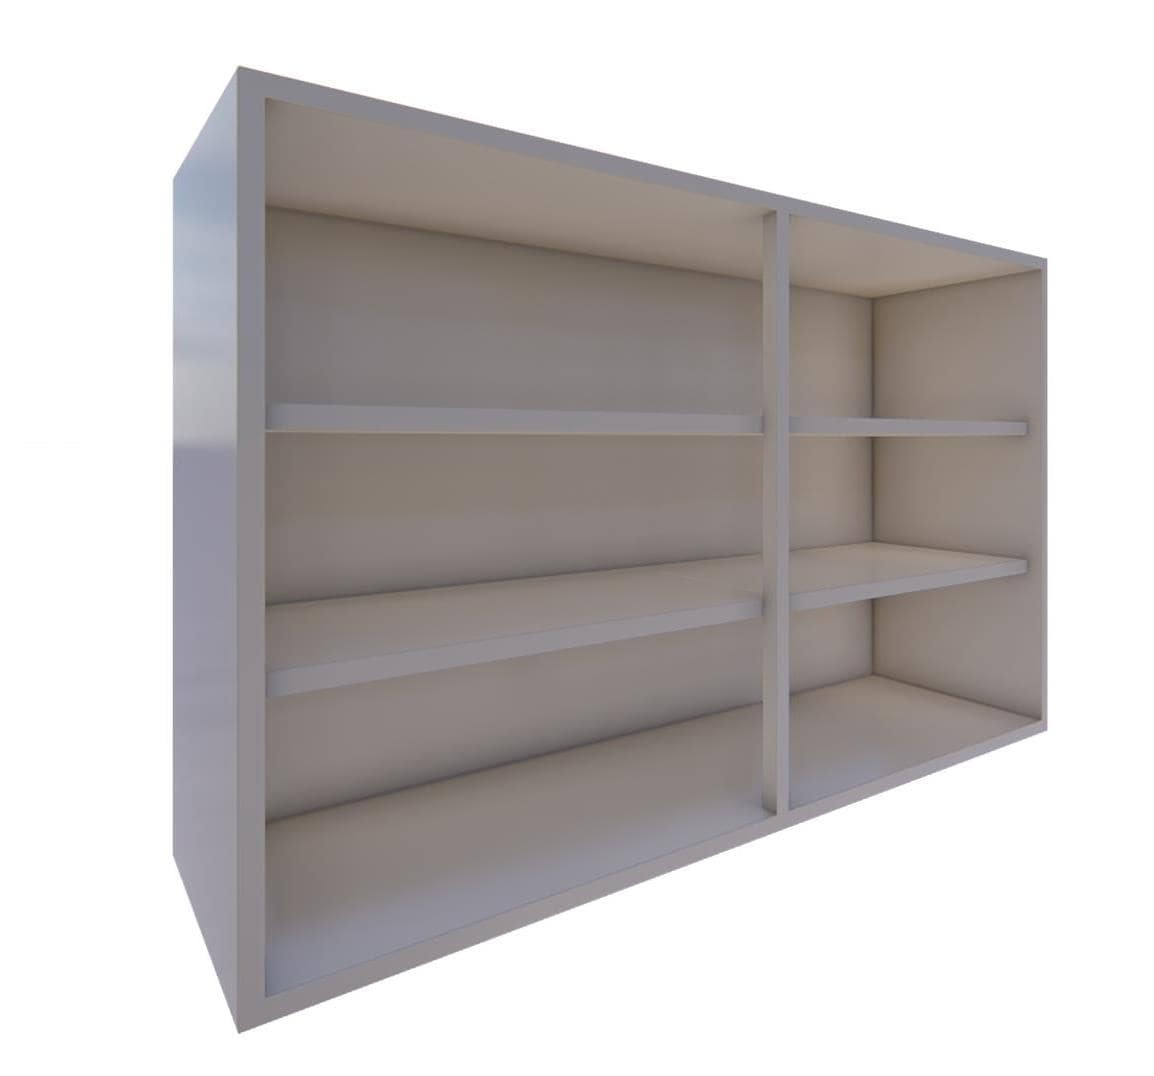 Double Wall Units (720mm high)